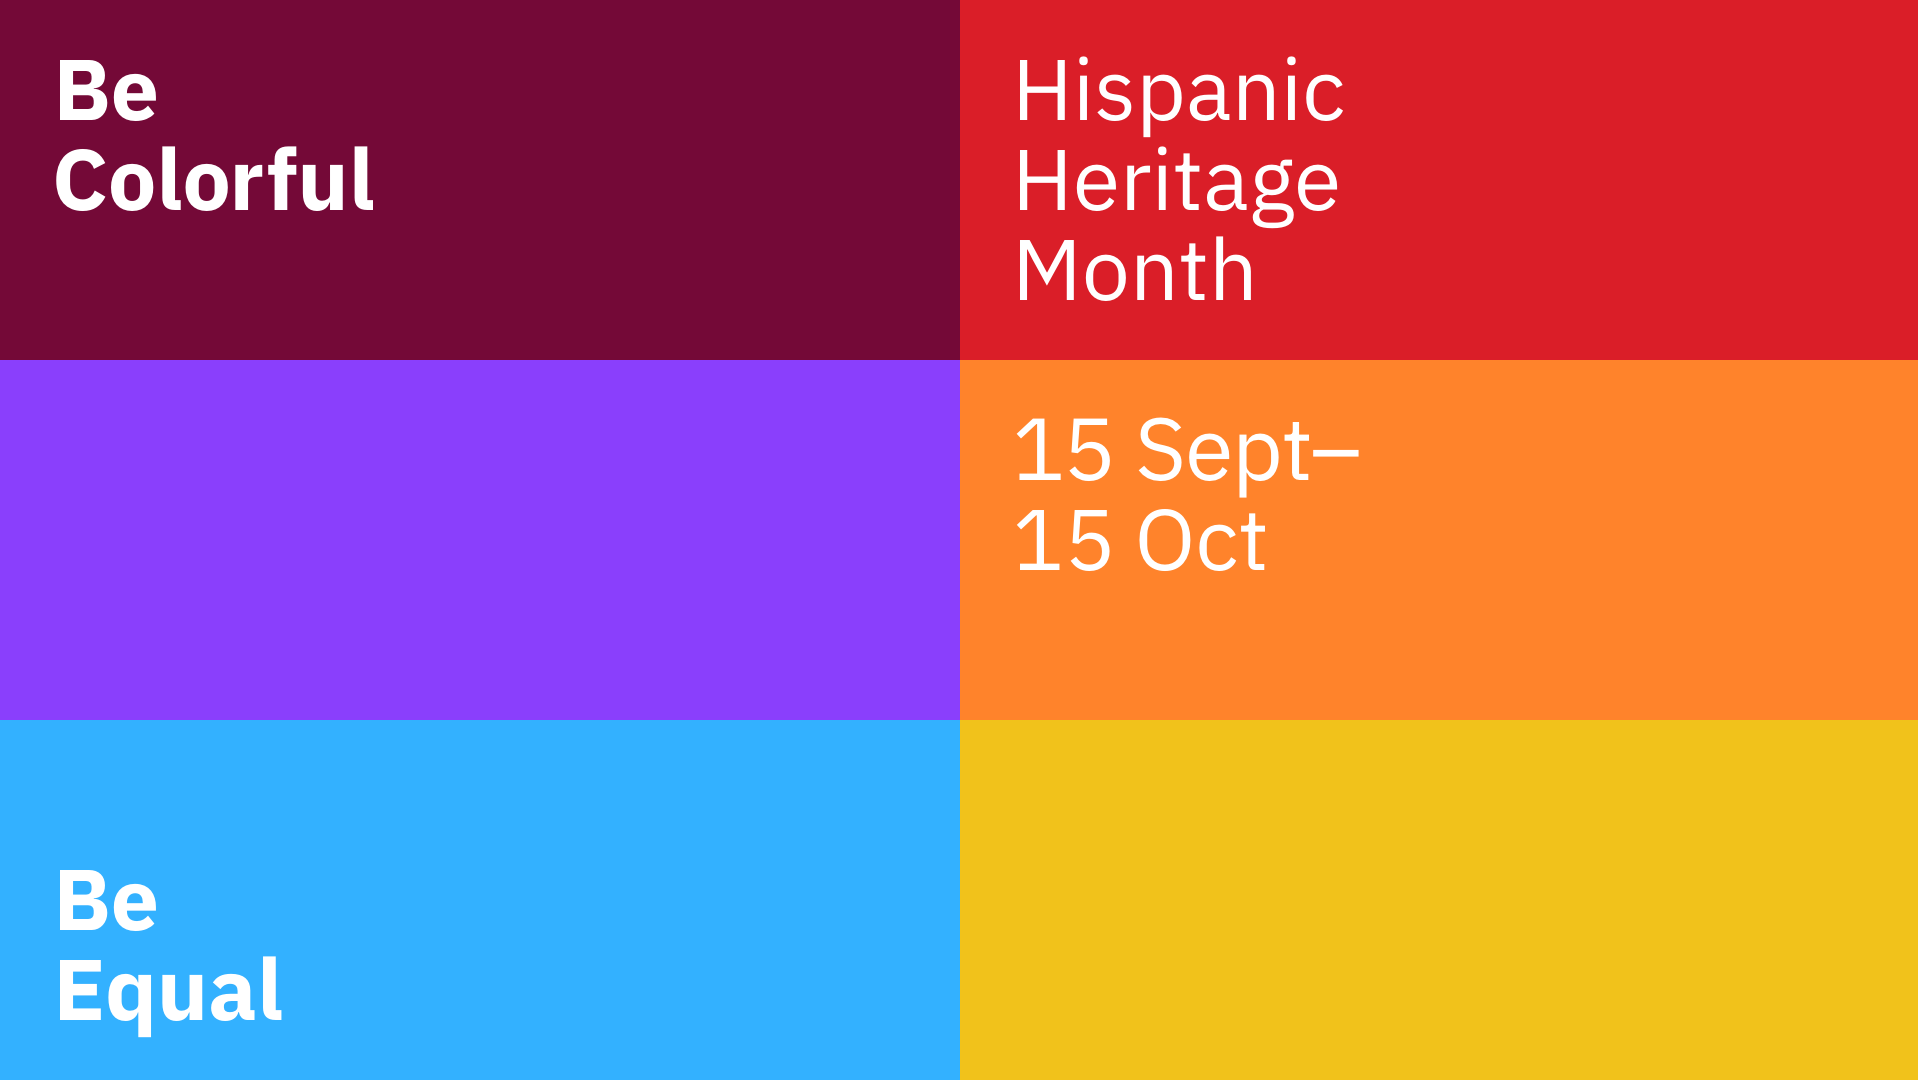 Hispanic Heritage Month September 15 to October 15. Be Colorful, Be Equal